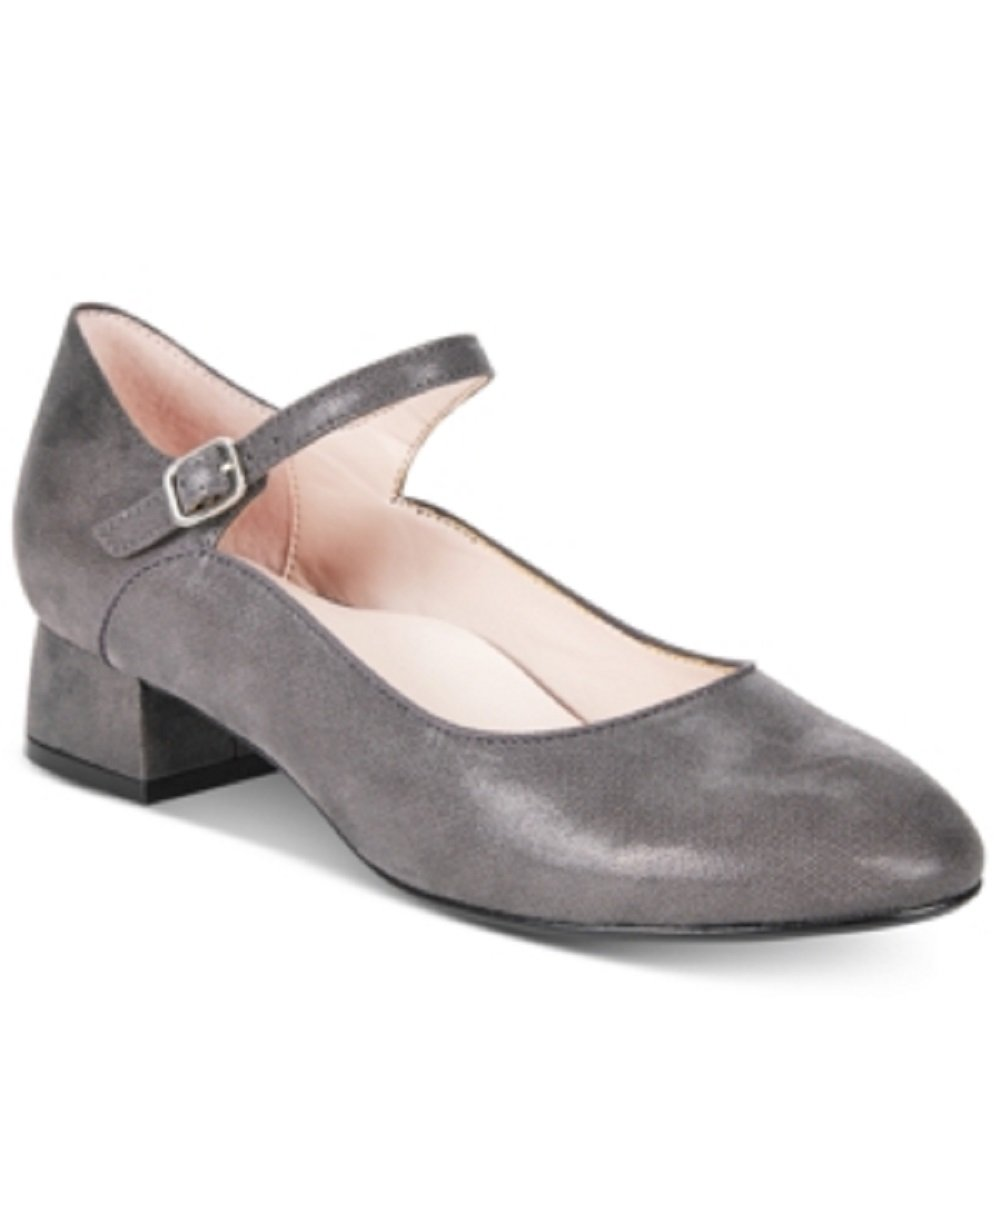 Taryn Rose TR Fannie Mary Jane Pumps Women's Shoes 10.5 Grey